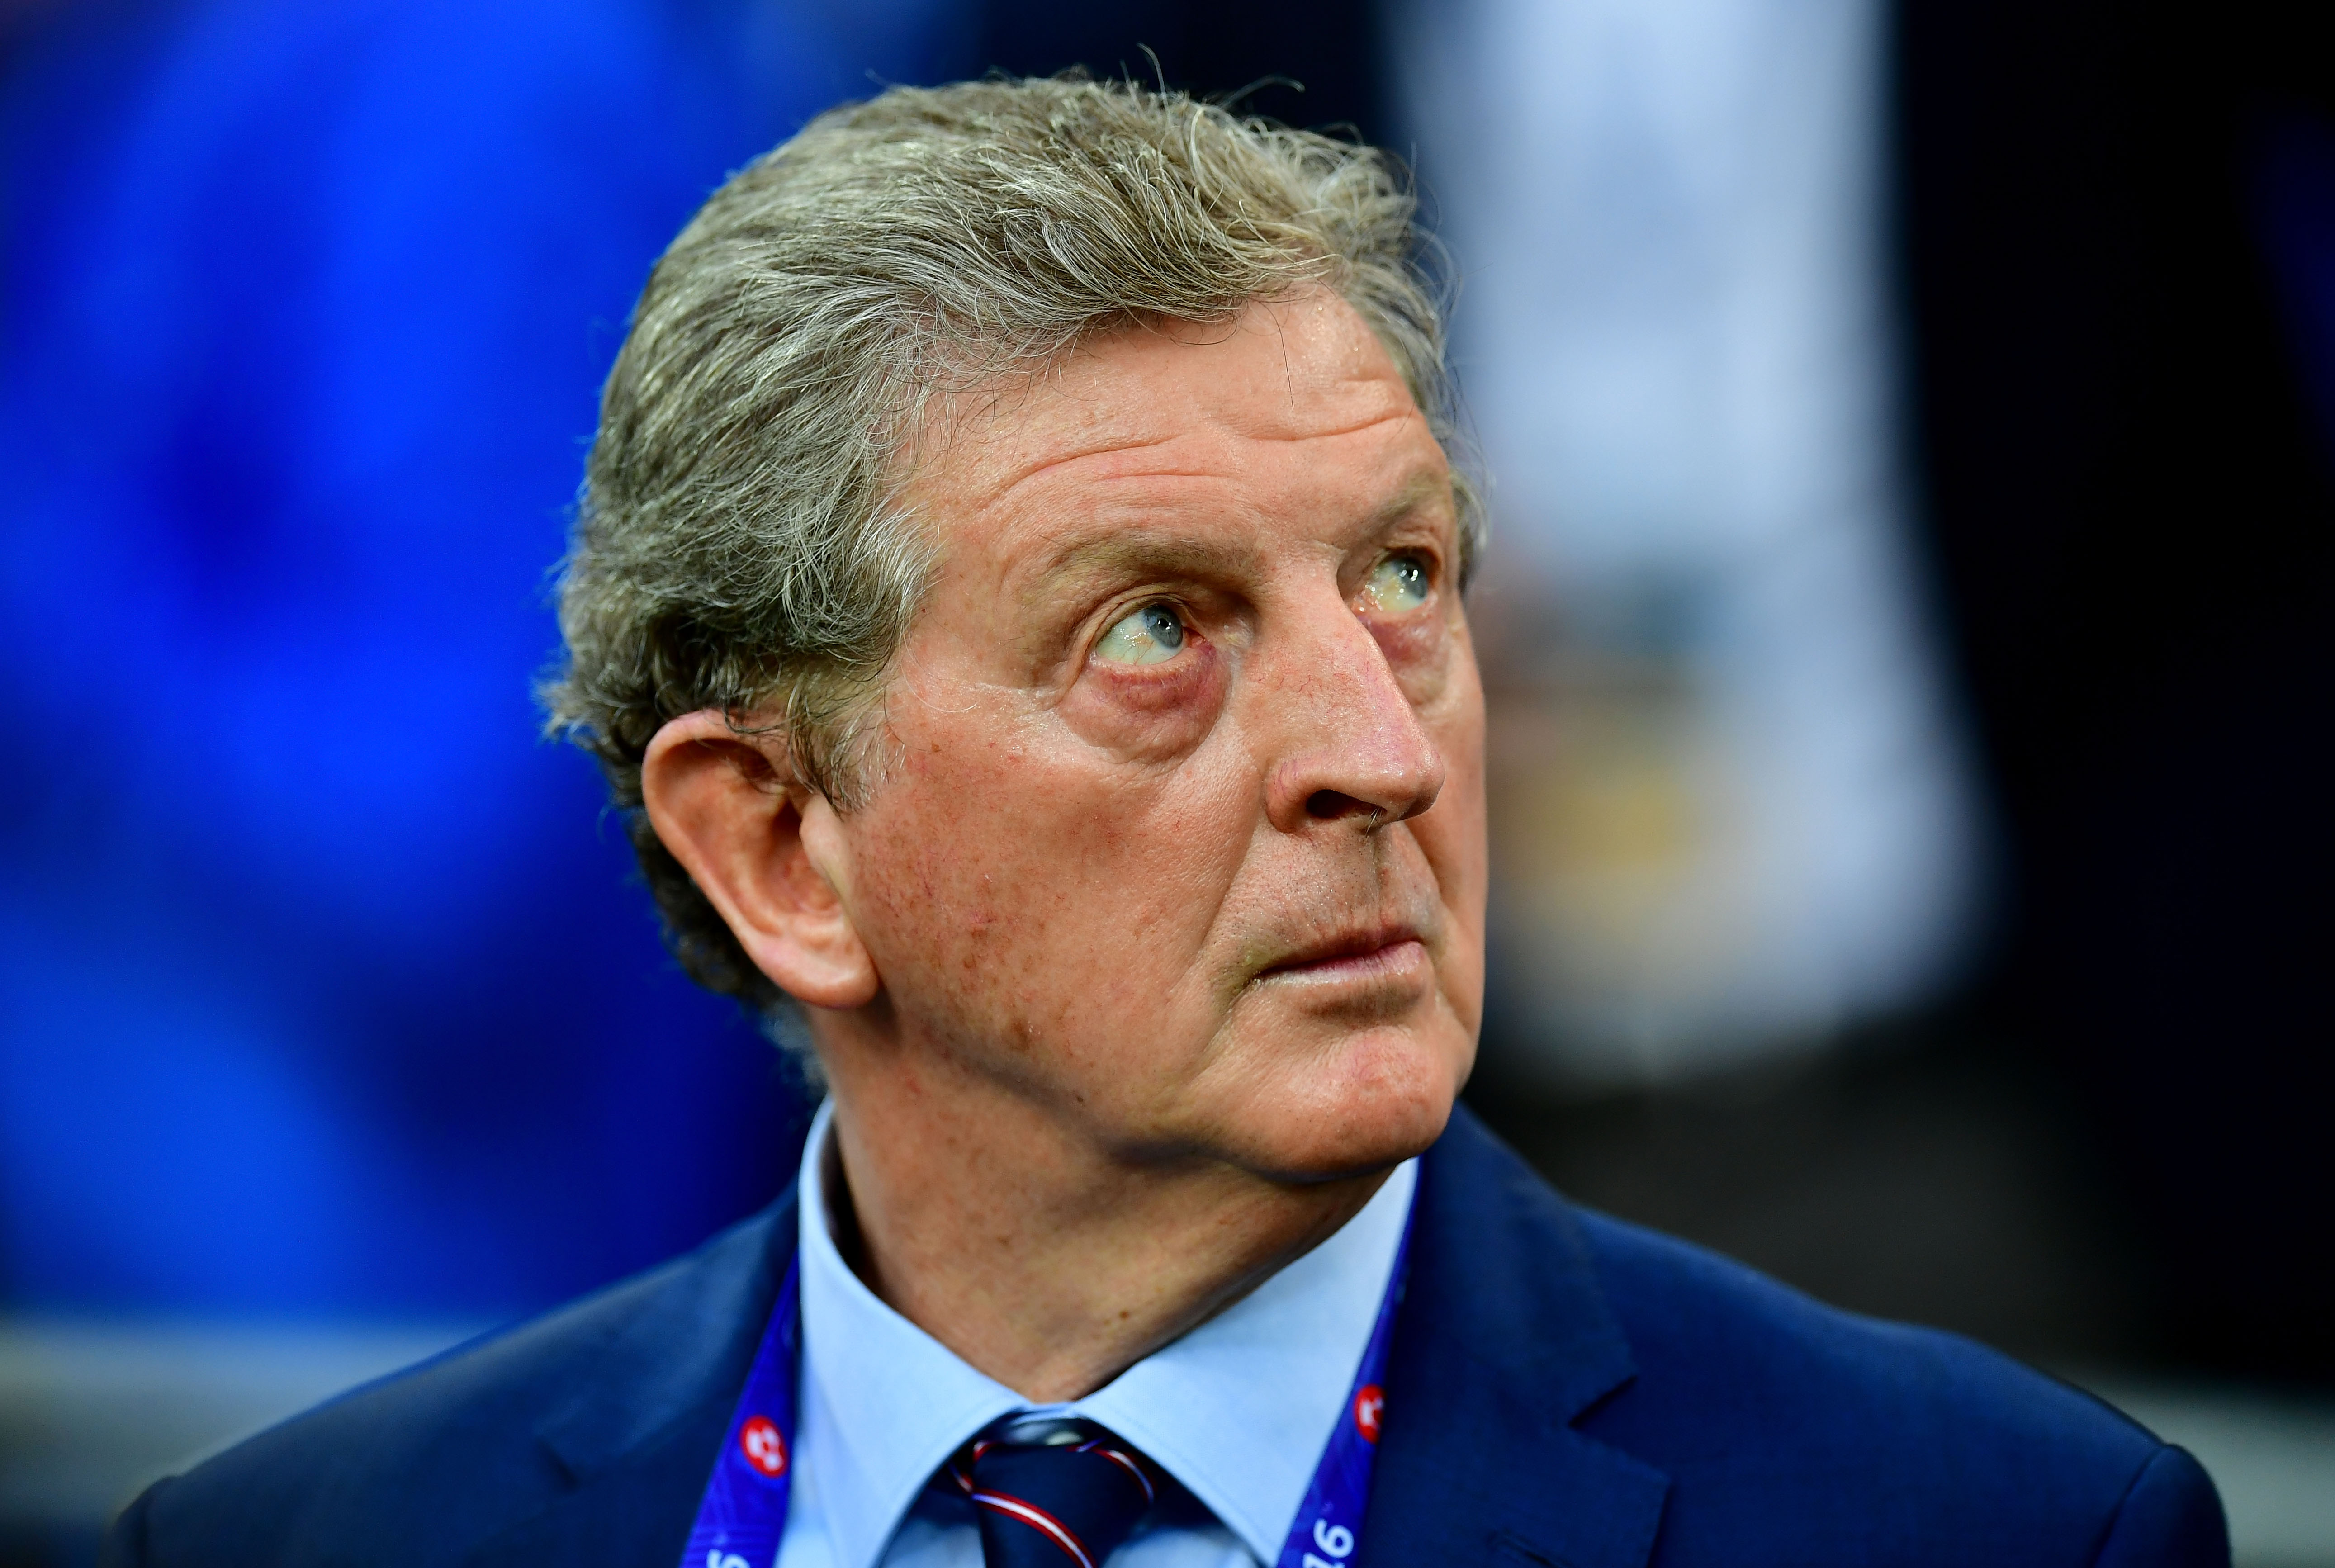 MARSEILLE, FRANCE - JUNE 11: Roy Hodgson manager of England looks on prior to the UEFA EURO 2016 Group B match between England and Russia at Stade Velodrome on June 11, 2016 in Marseille, France. (Photo by Dan Mullan/Getty Images)